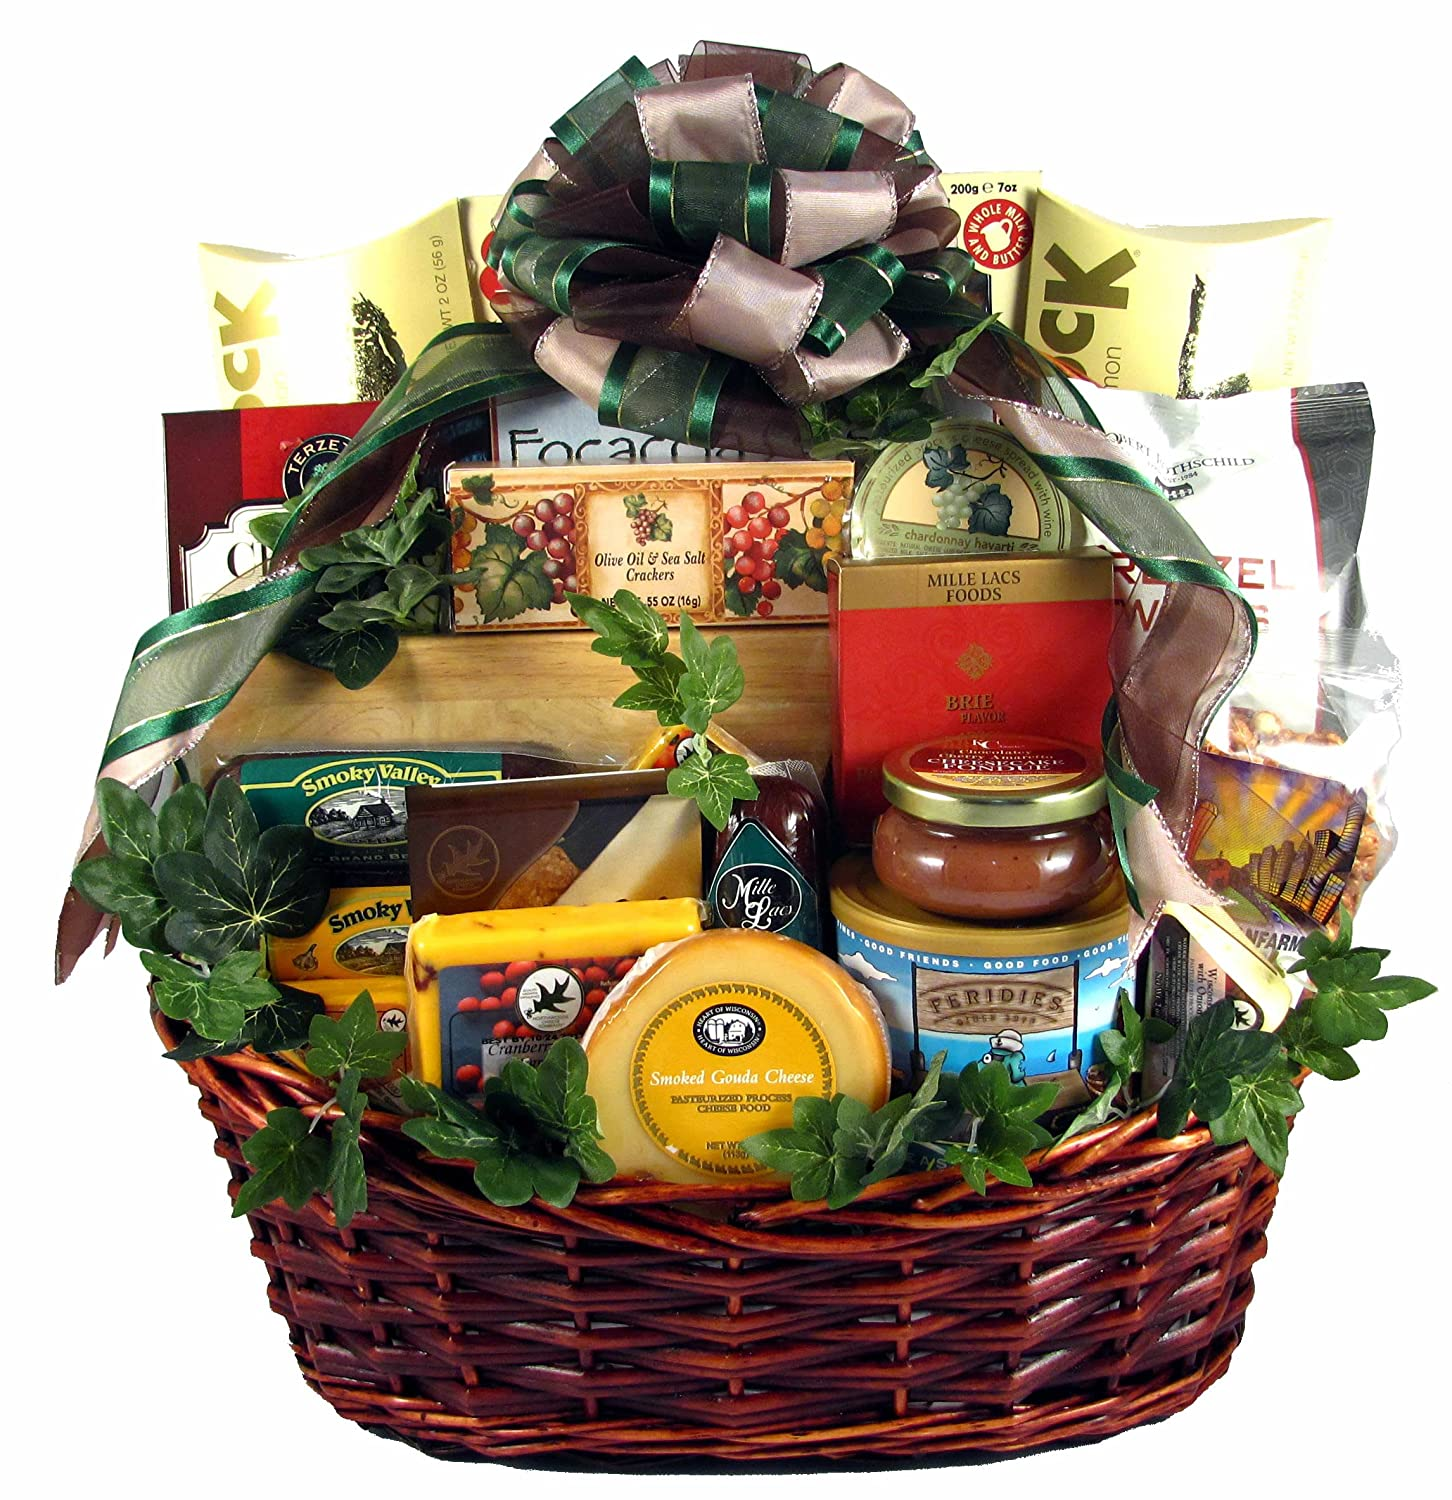 Gift Basket Village Group Therapy, Deluxe Gourmet Gift Basket for Groups with Meats and Cheeses, Smoked Salmon, Cookies, Chocolates and Lots More,,,